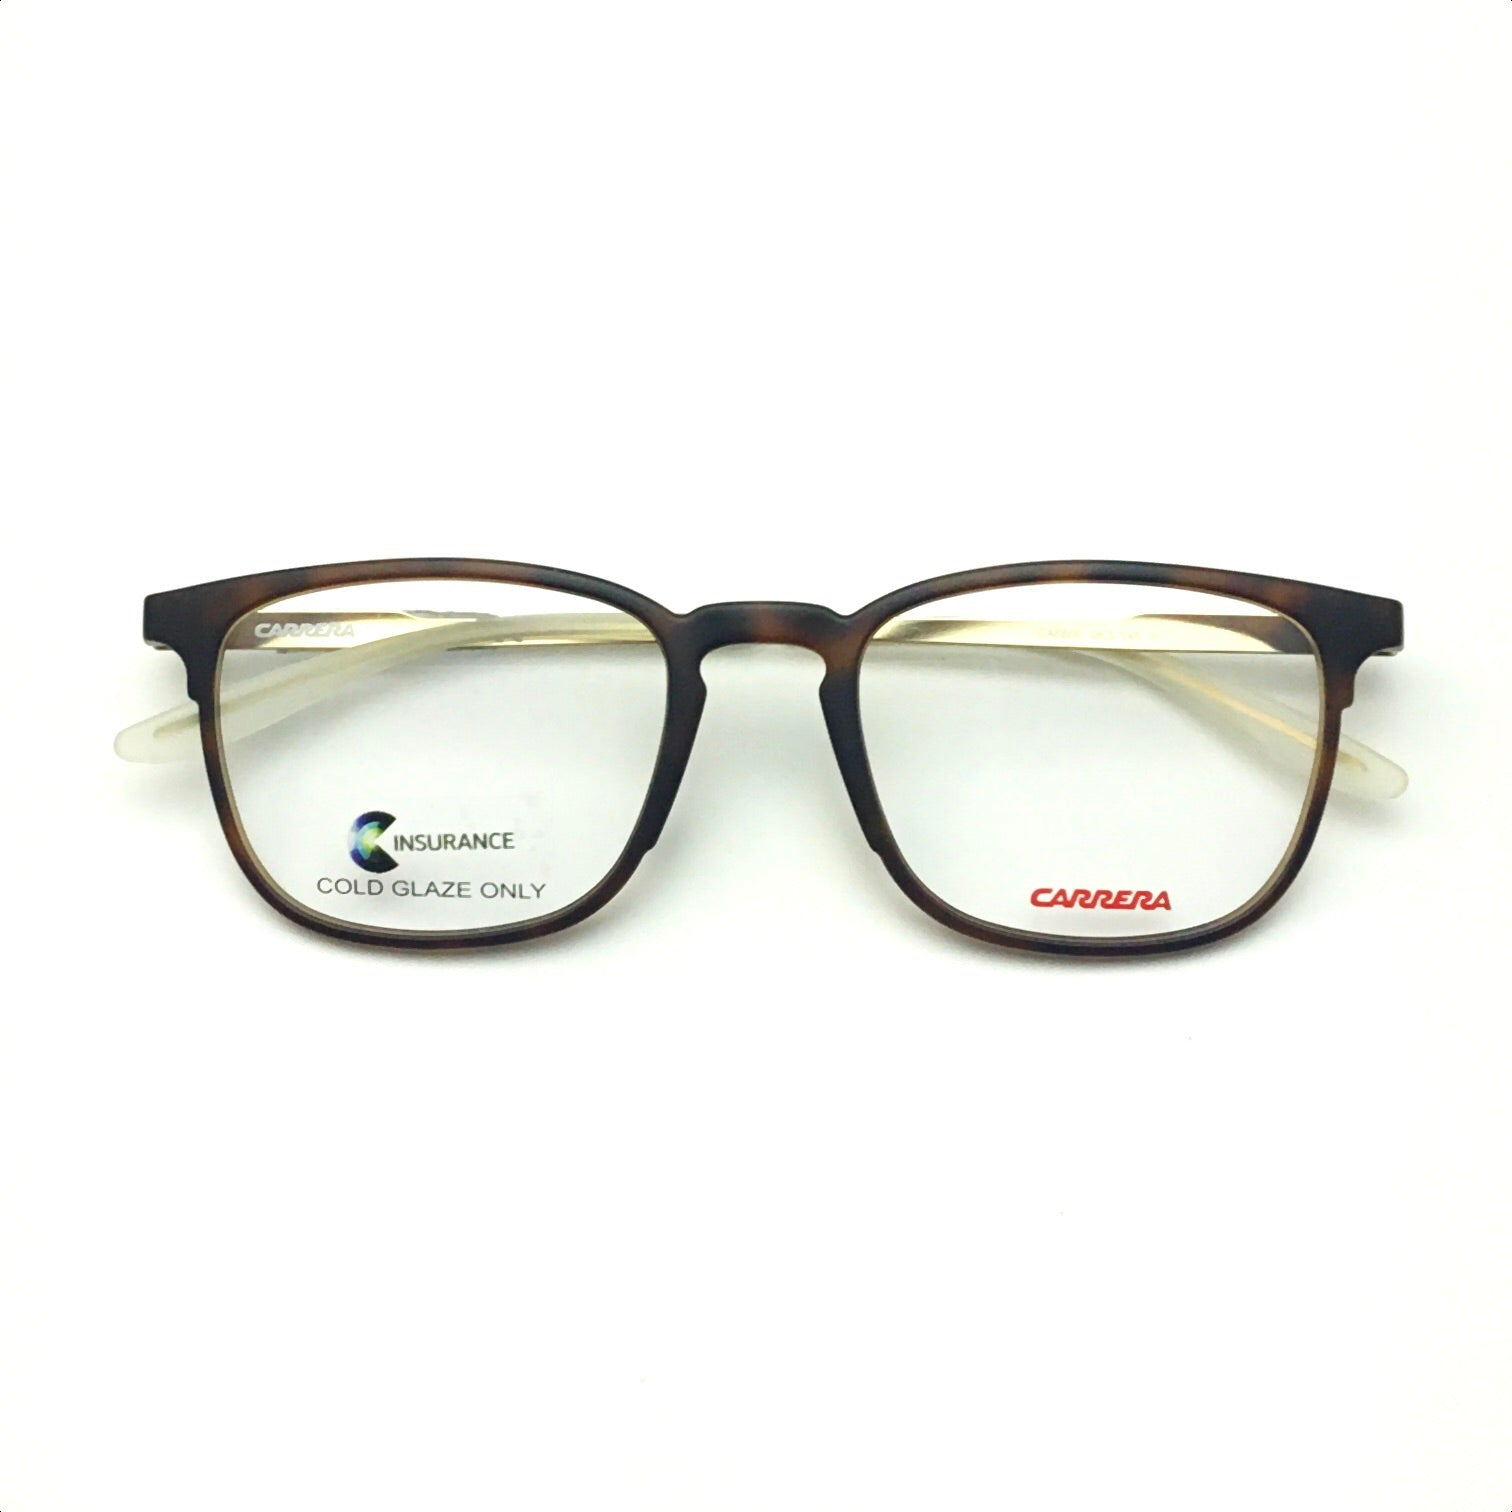 Carrera Glasses $149 SPECIAL E19